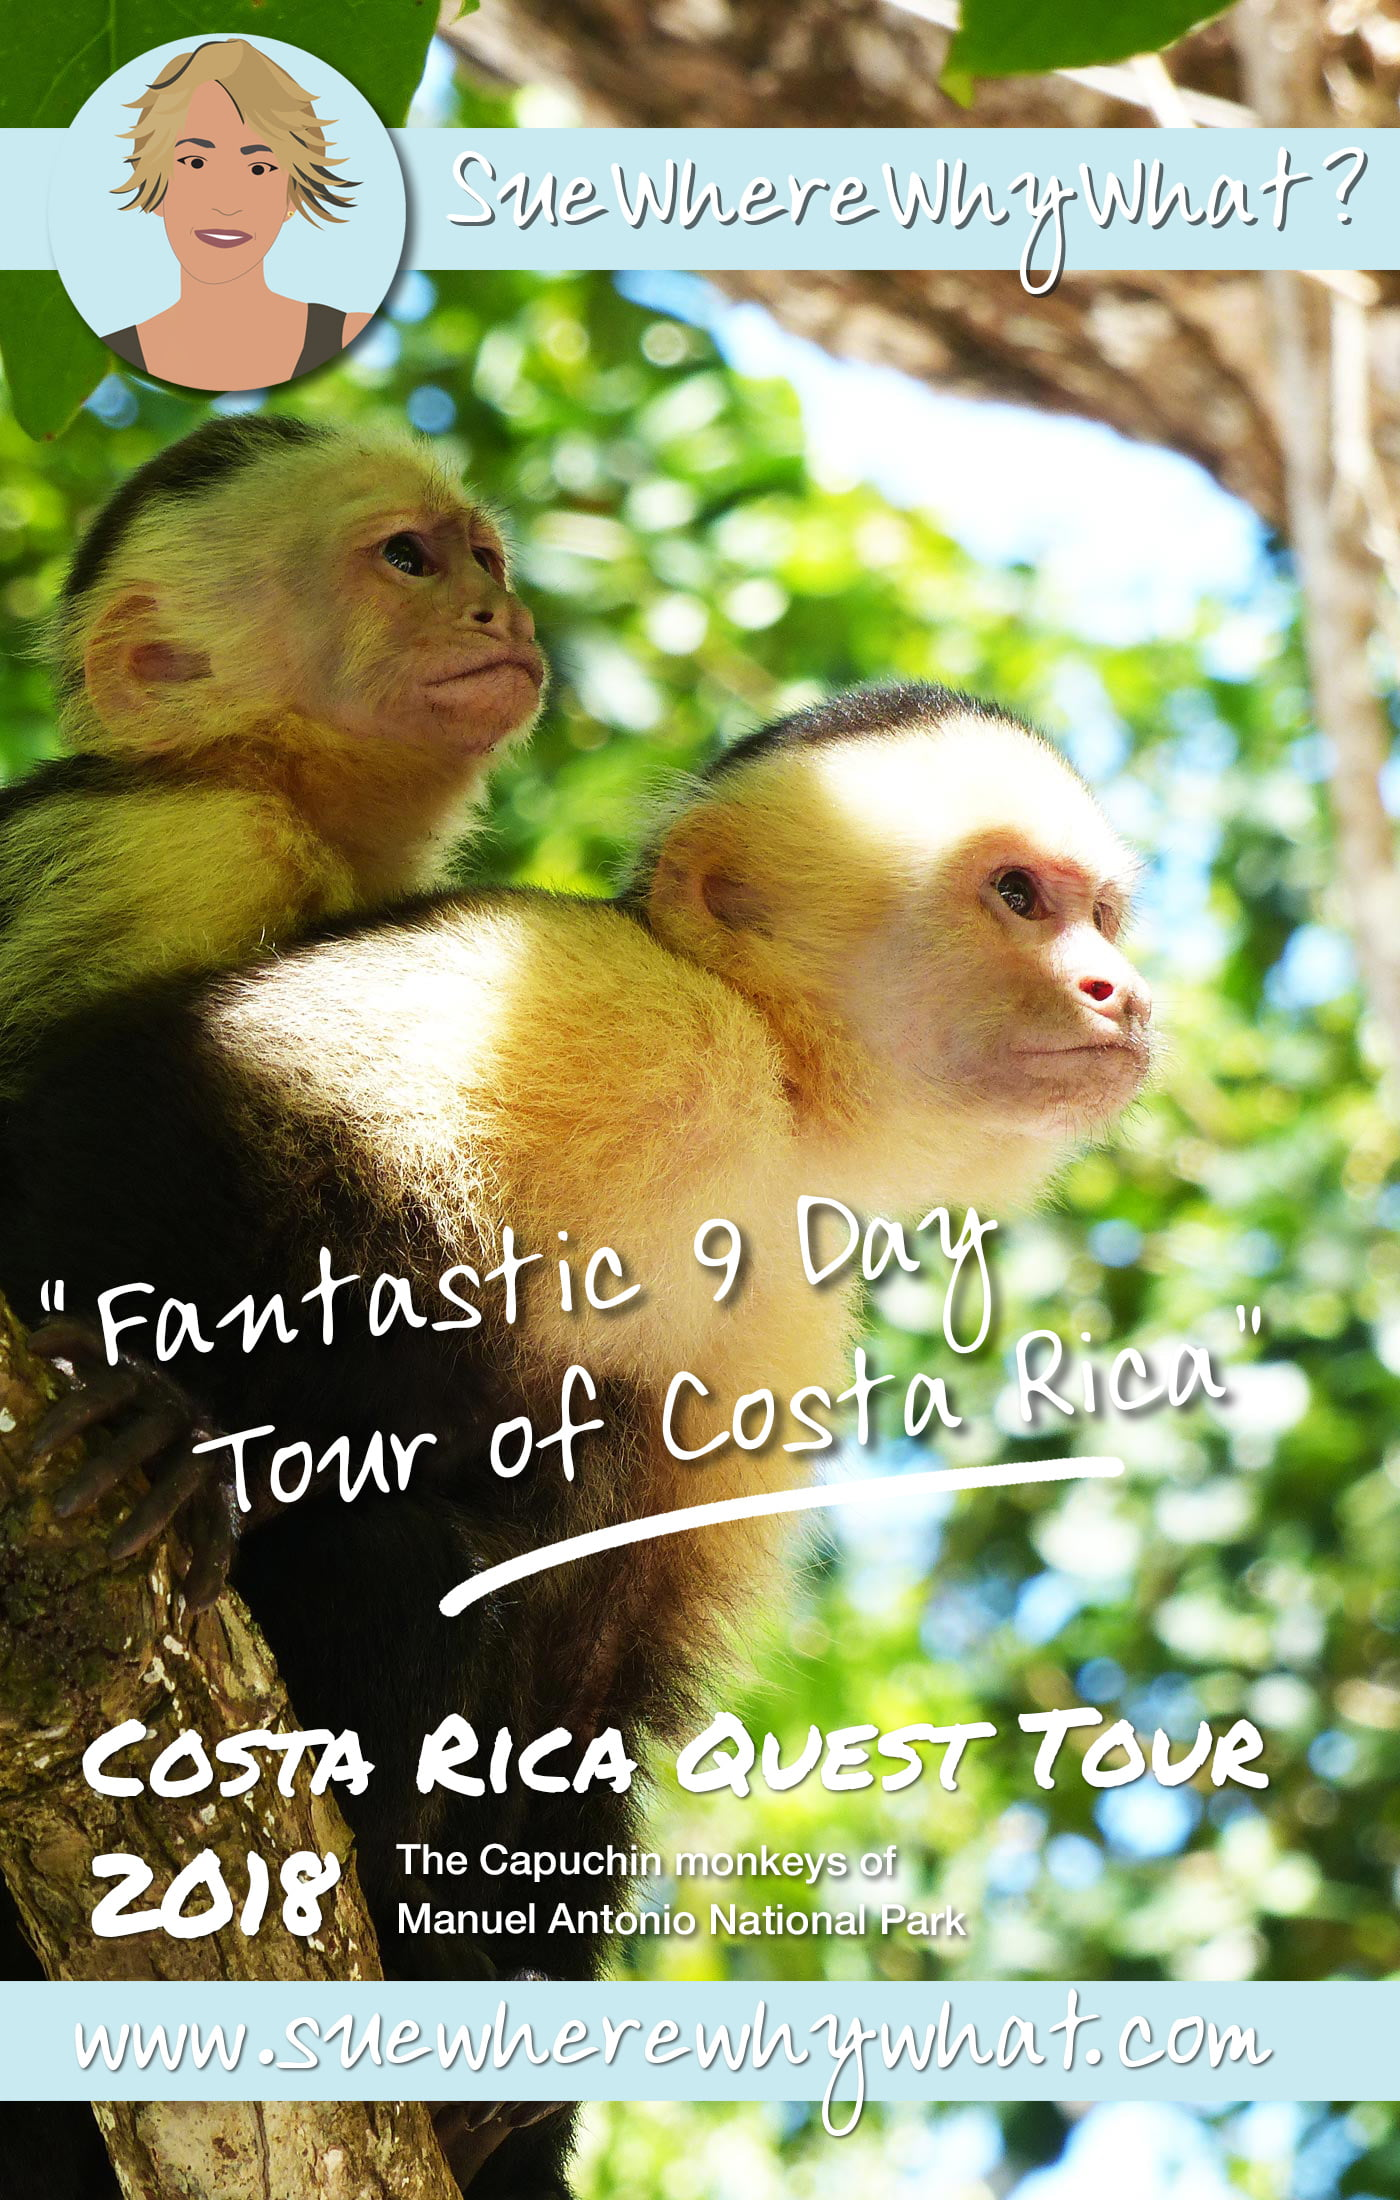 As part of 6-months in the Caribbean, I visited Costa Rica on a 9-day tour of the central region. Includes ziplining in Monteverde, canyoning & white water rafting in La Fortuna and the spectacular Manuel Antonio National Park. A perfect way to see the rainforest & the wildlife of this beautiful country.  https://www.suewherewhywhat.com/activities/fantastic-9-day-tour-of-costa-rica